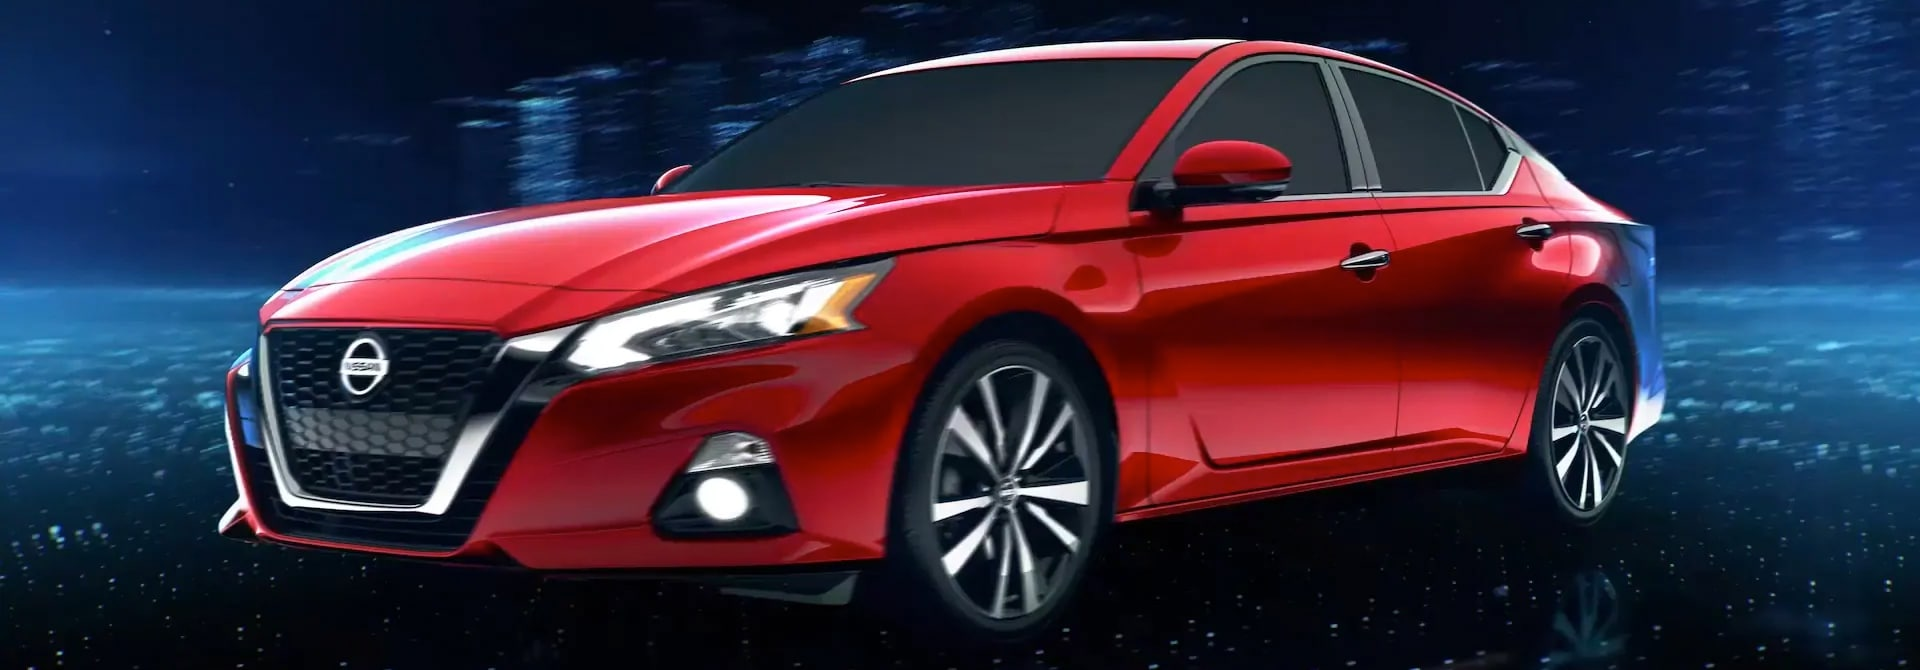 2020 Nissan Altima At Courtesy Nissan